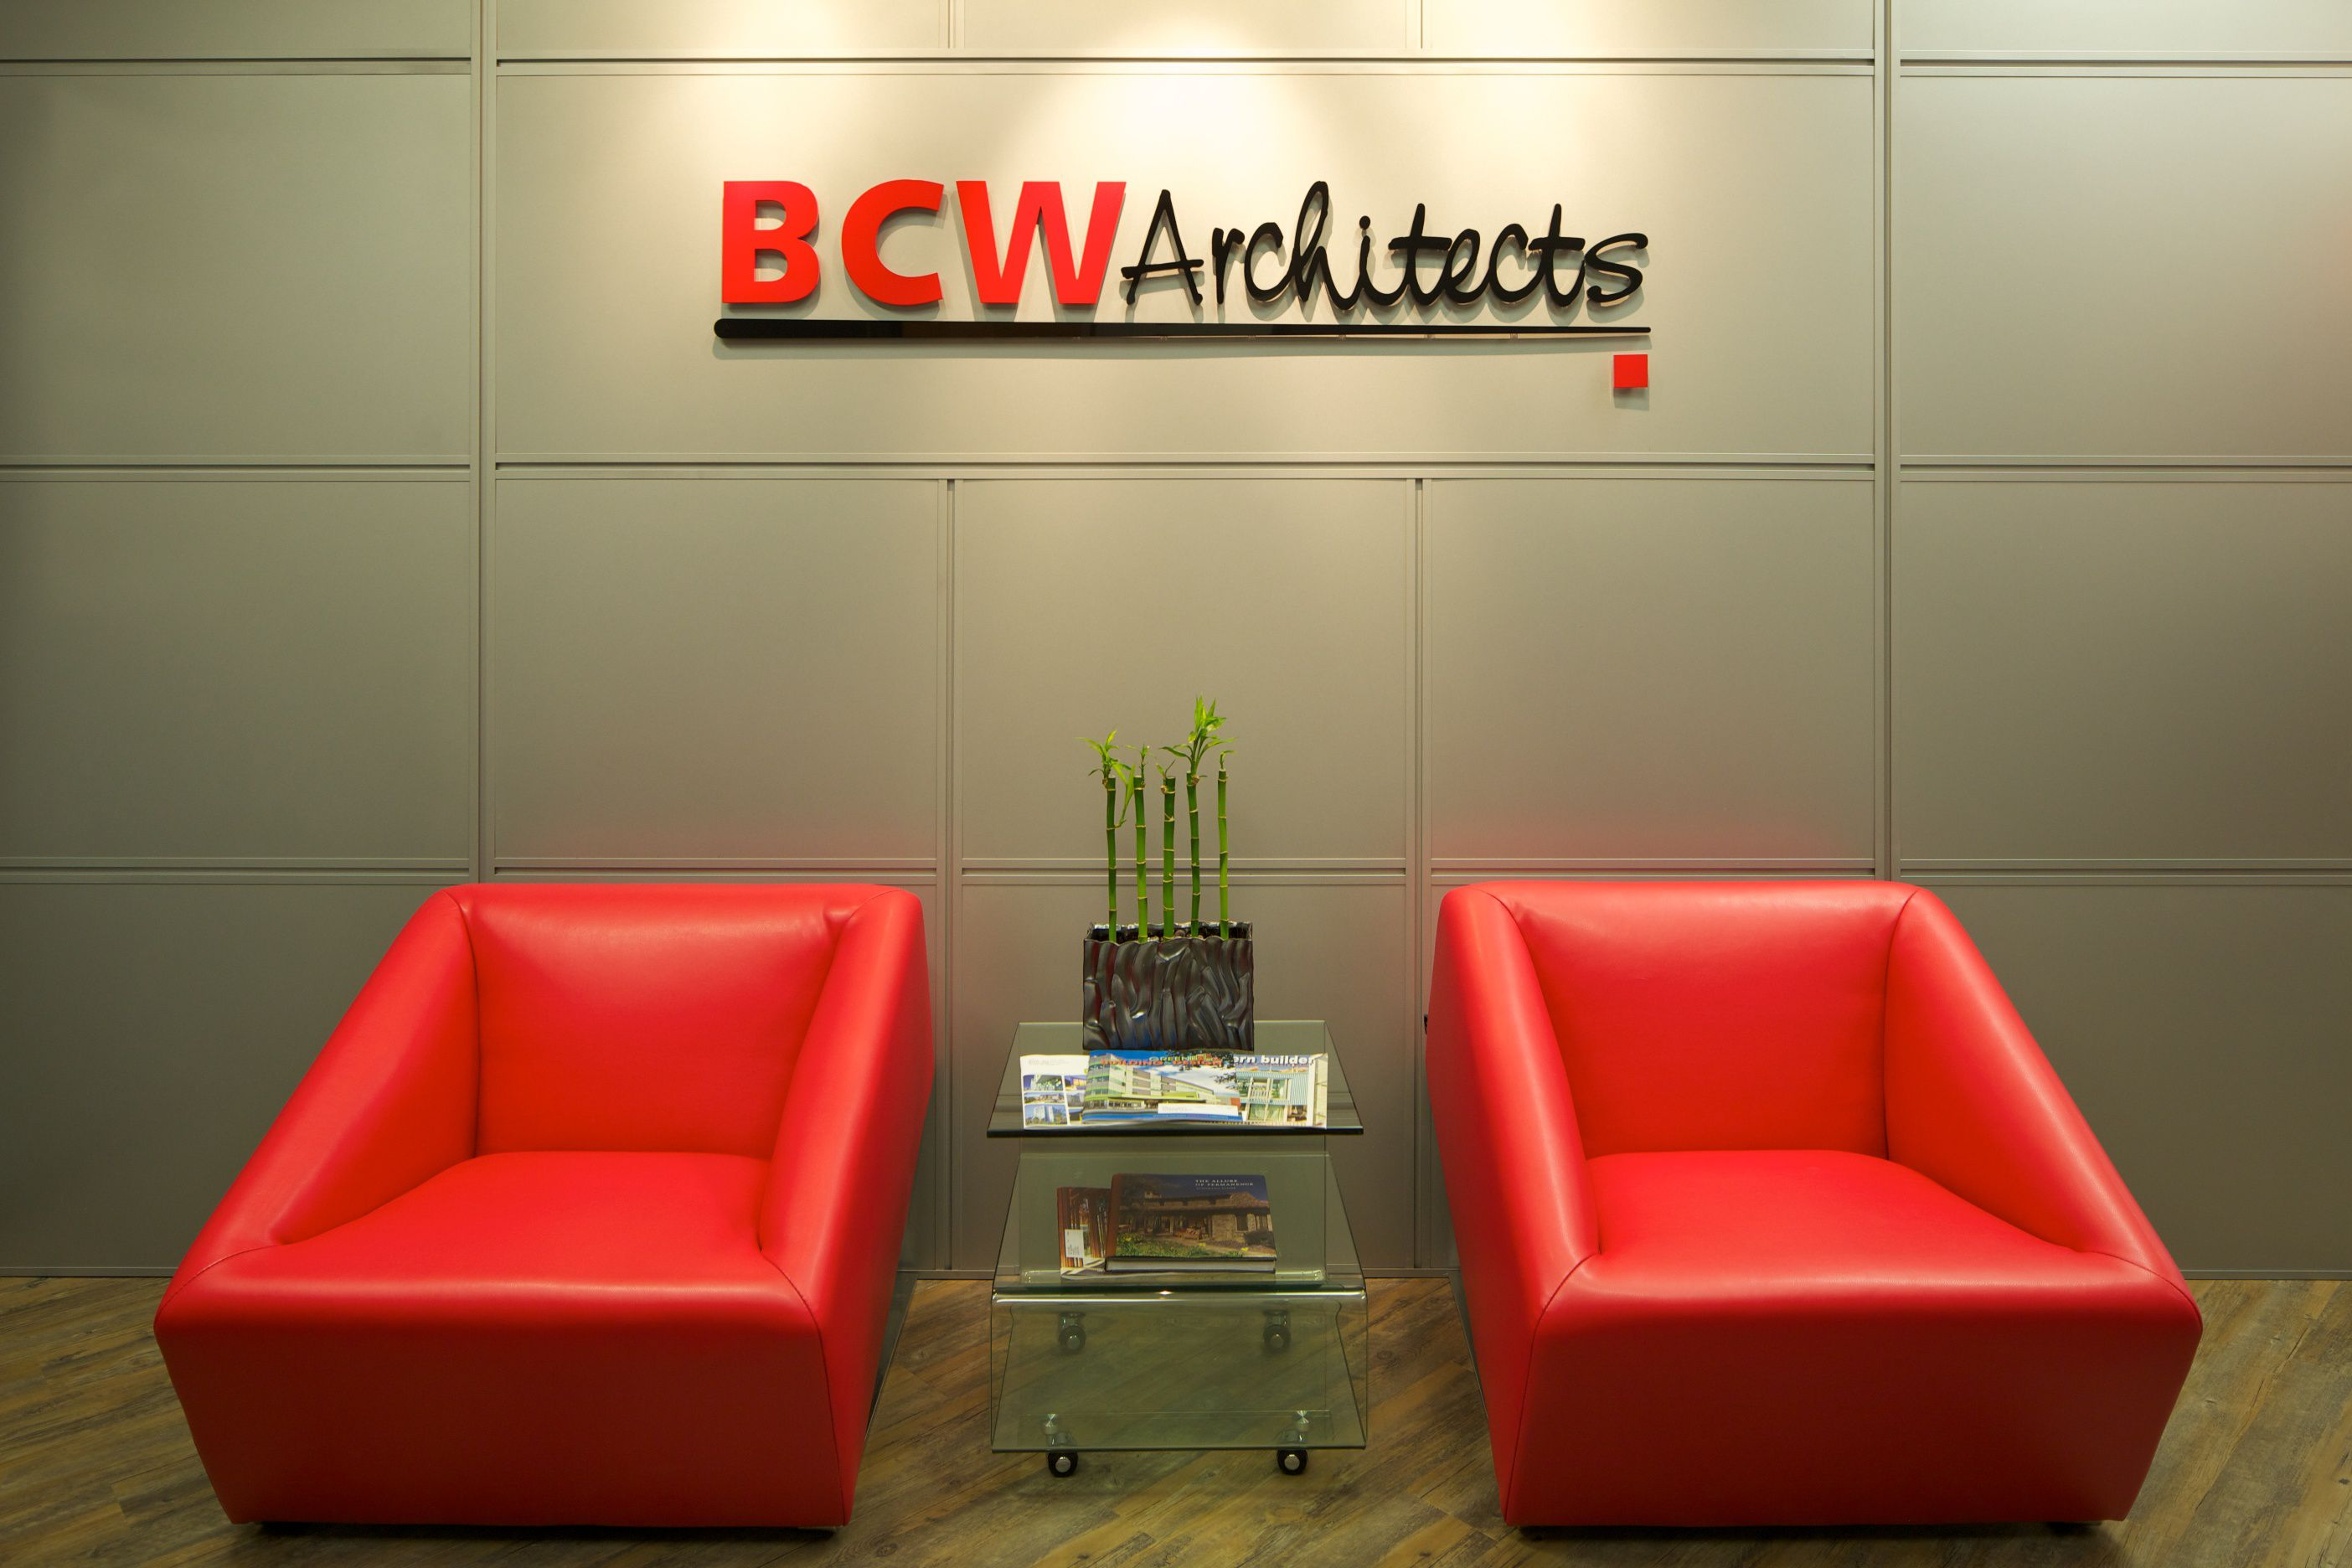 2014 BCW Architects